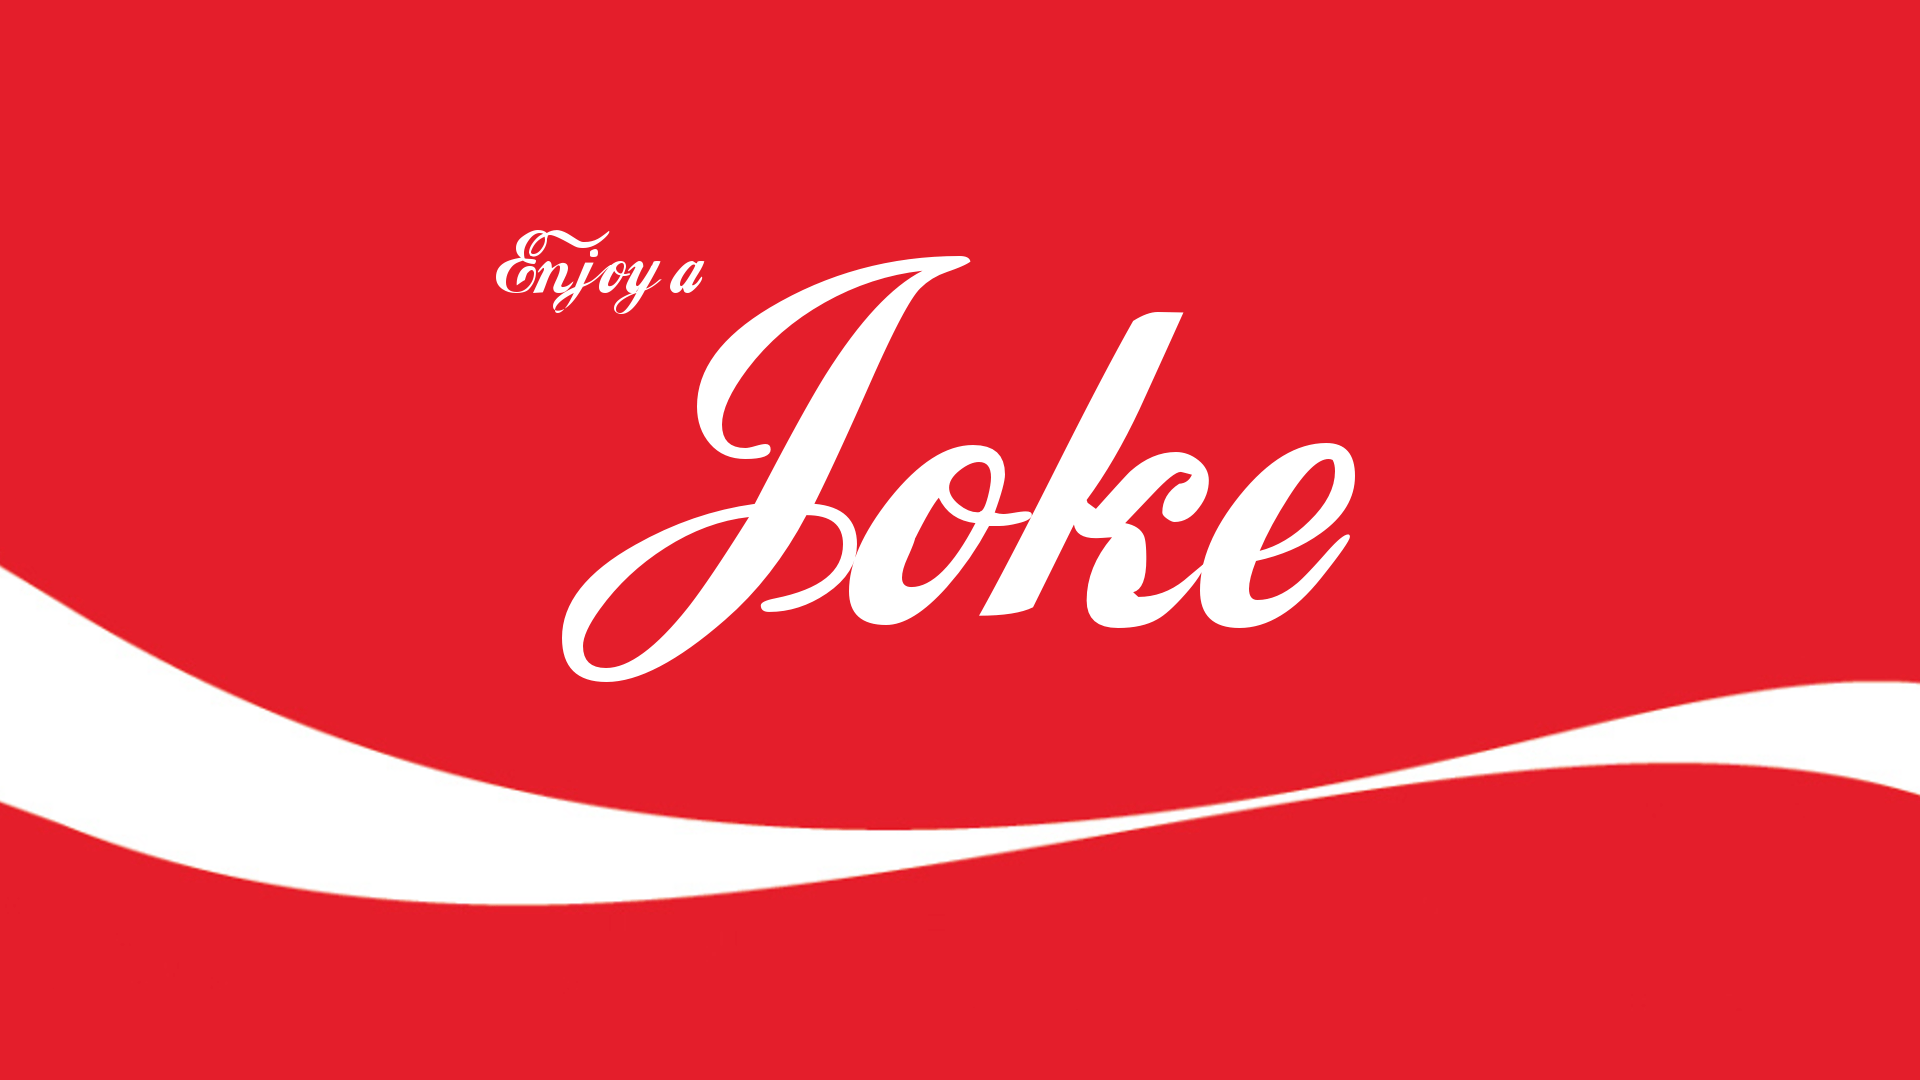 Wallpaper download jokes - Download Joke Wallpaper 240x320 Wallpoper